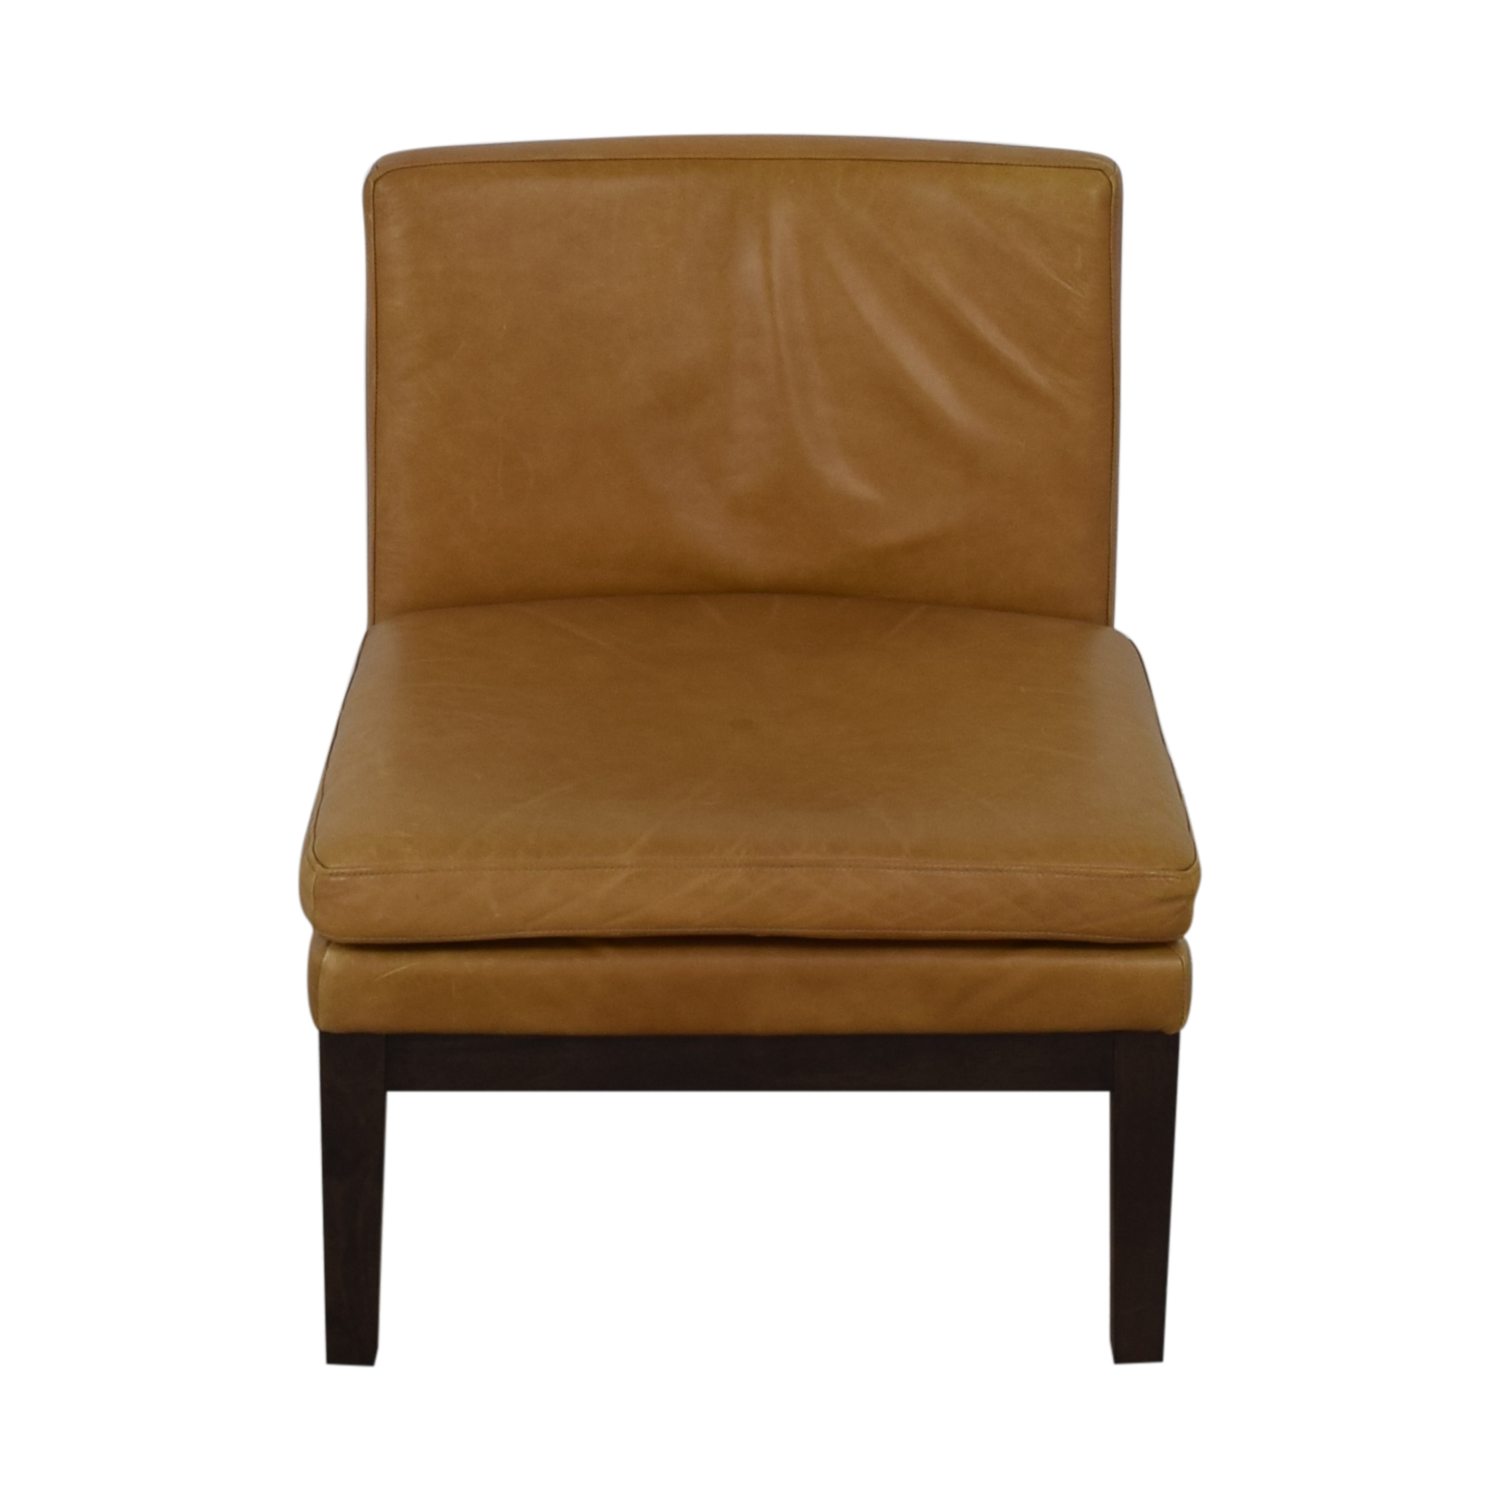 West Elm Orange Tan Leather Chair / Accent Chairs